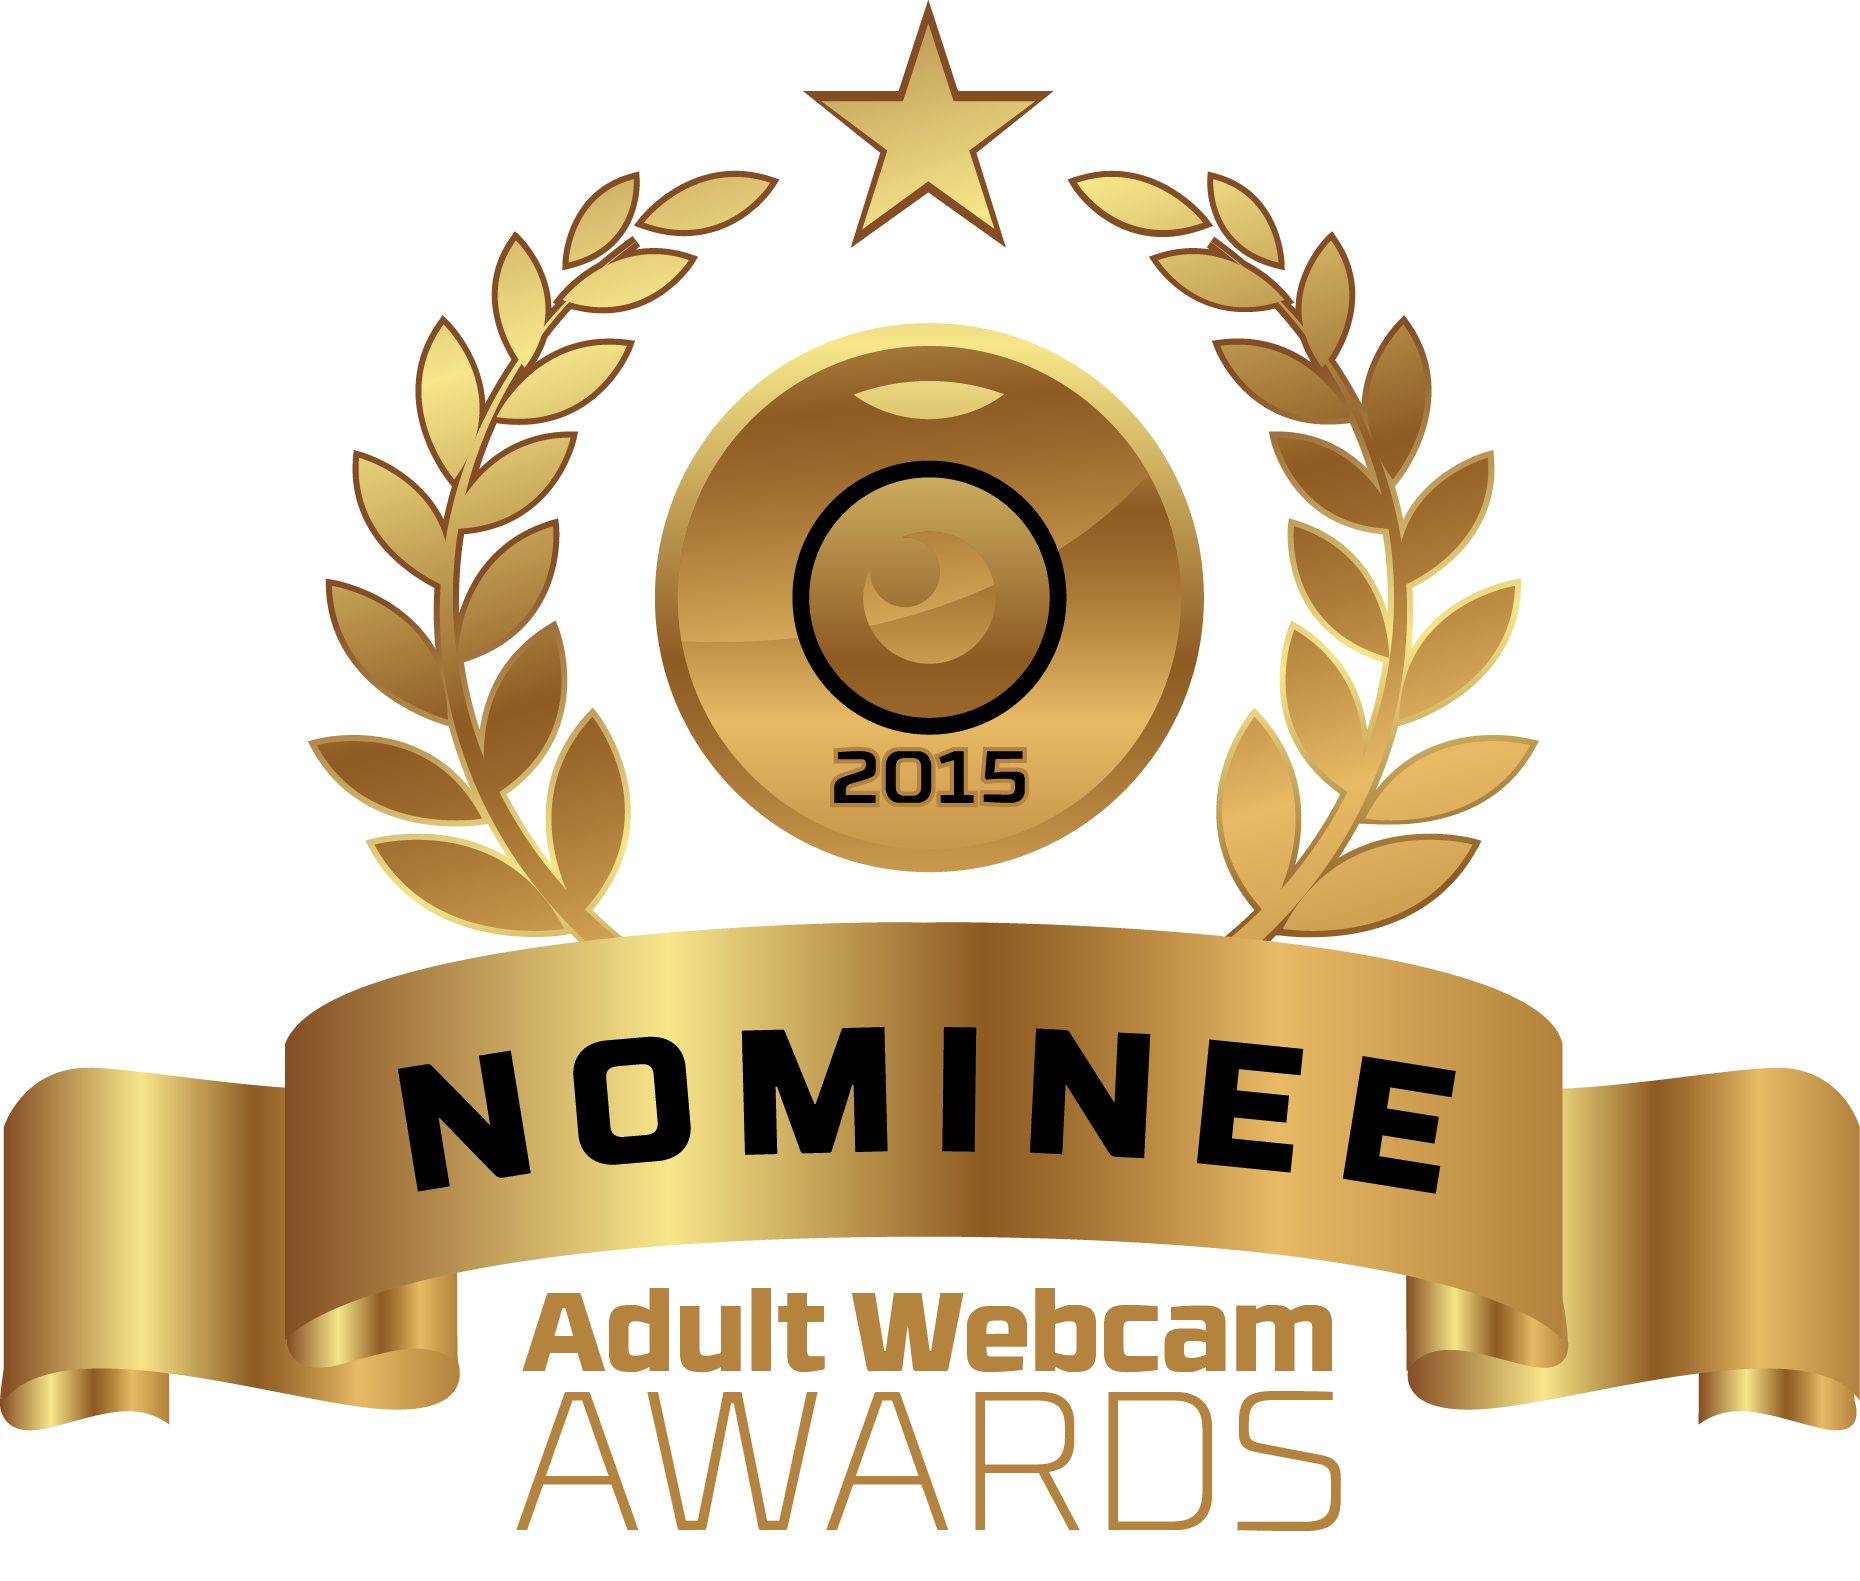 Adult Webcam Awards Nominee blank